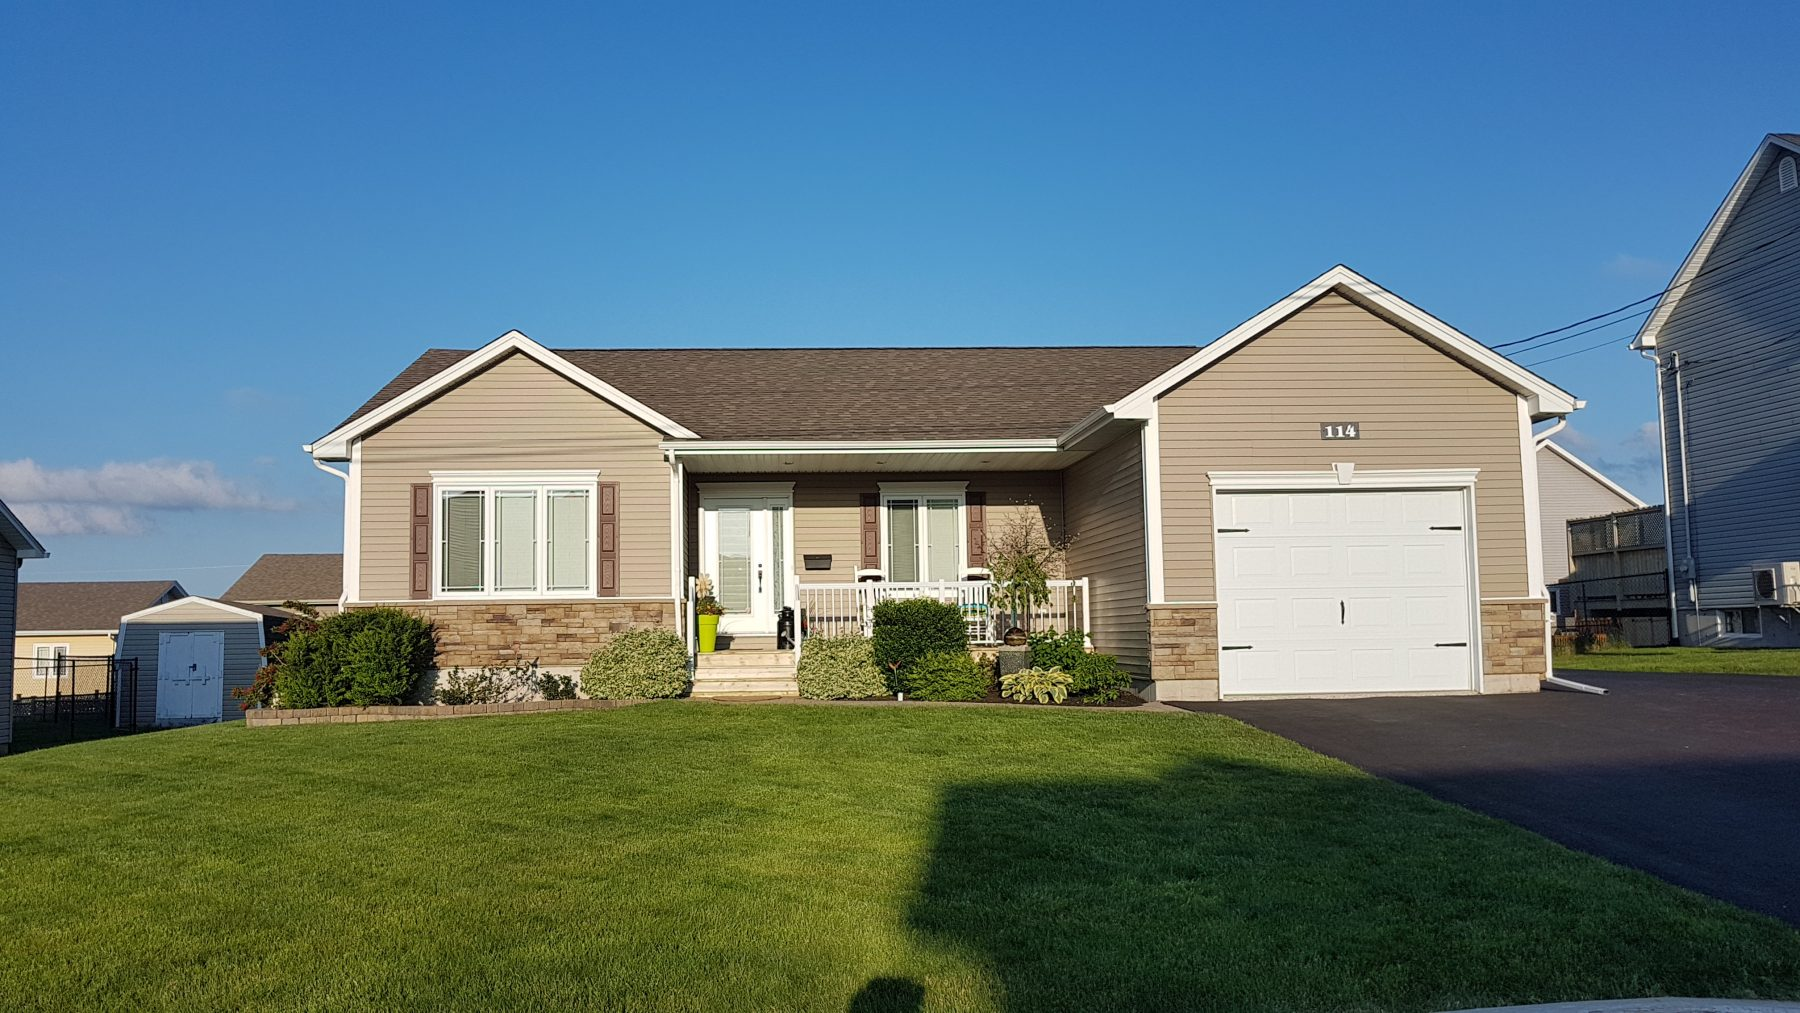 After Photo: Home Renovation Project, Siding, Railings, and Shutters